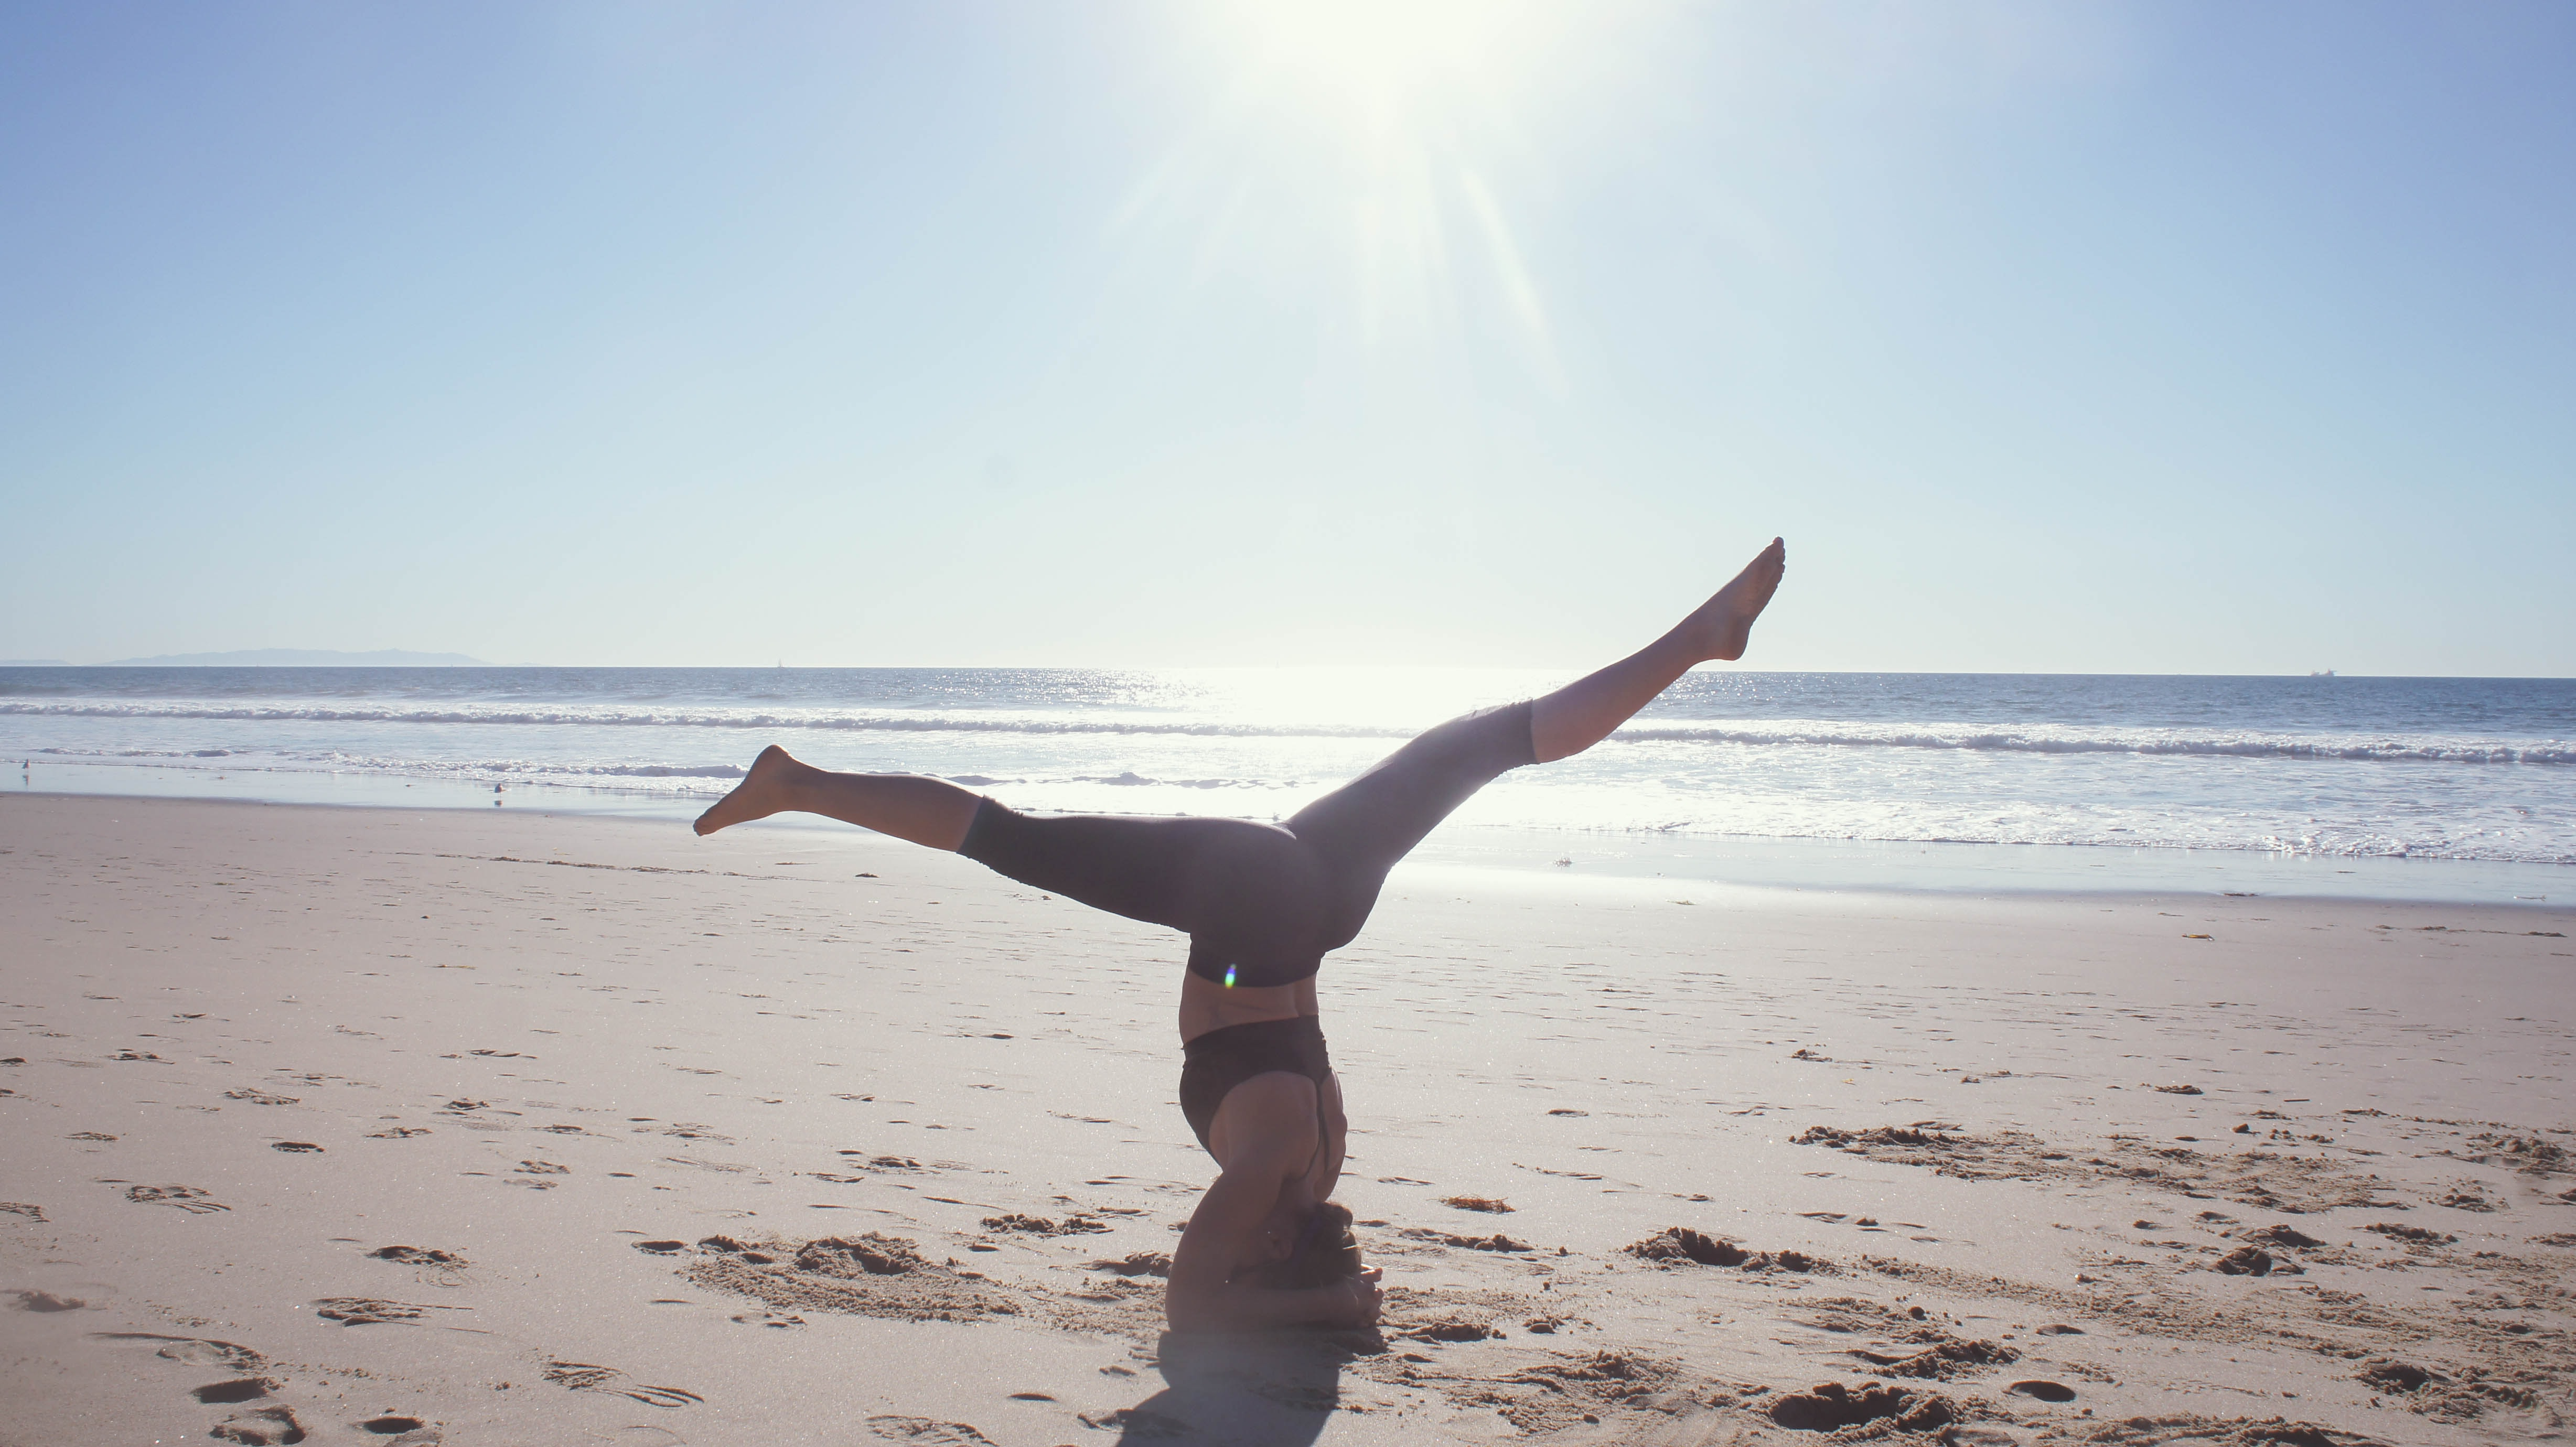 A woman stretching her legs in handstand position on the beach.